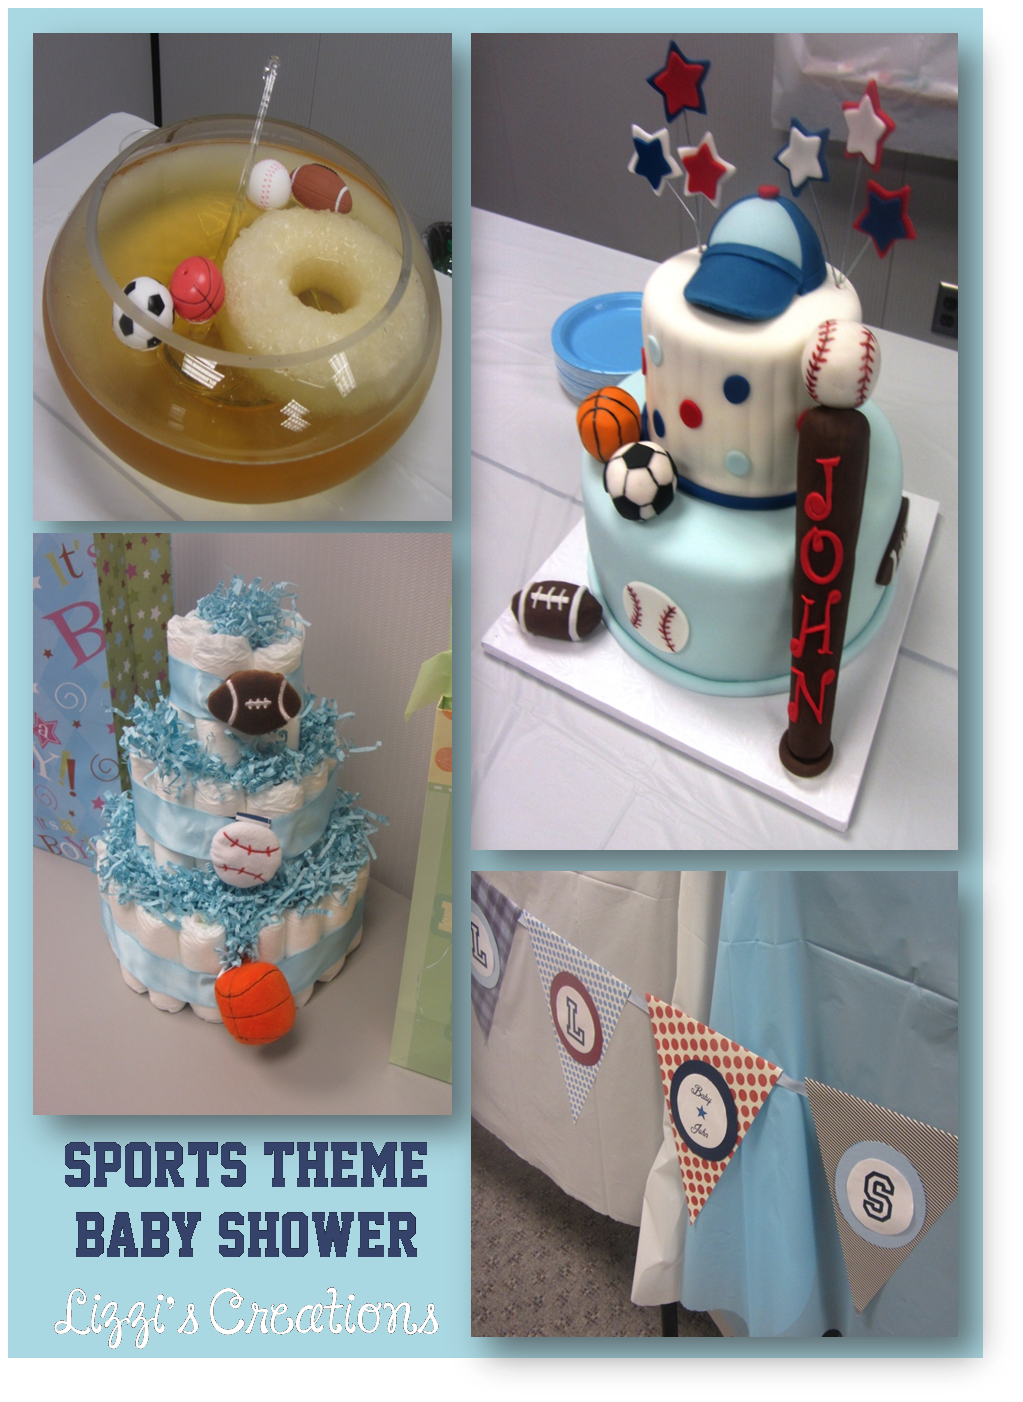 Lizzi's Creations: Sports Theme Baby Shower